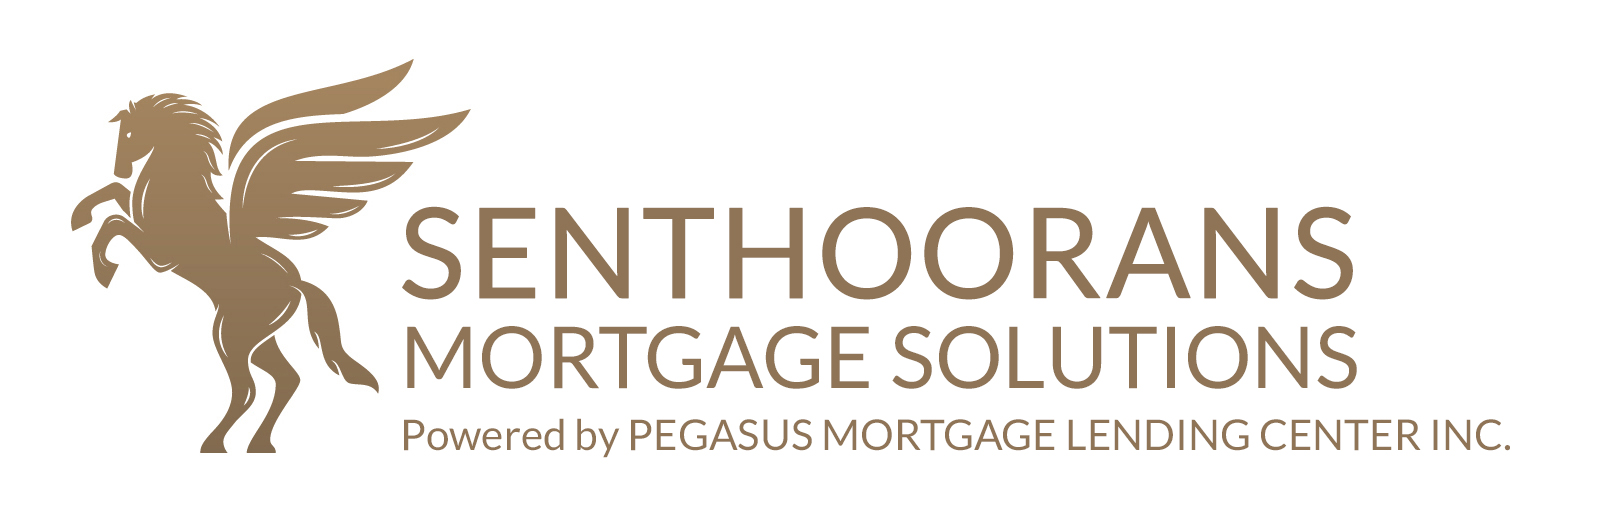 Mortgage Agent Mississauga